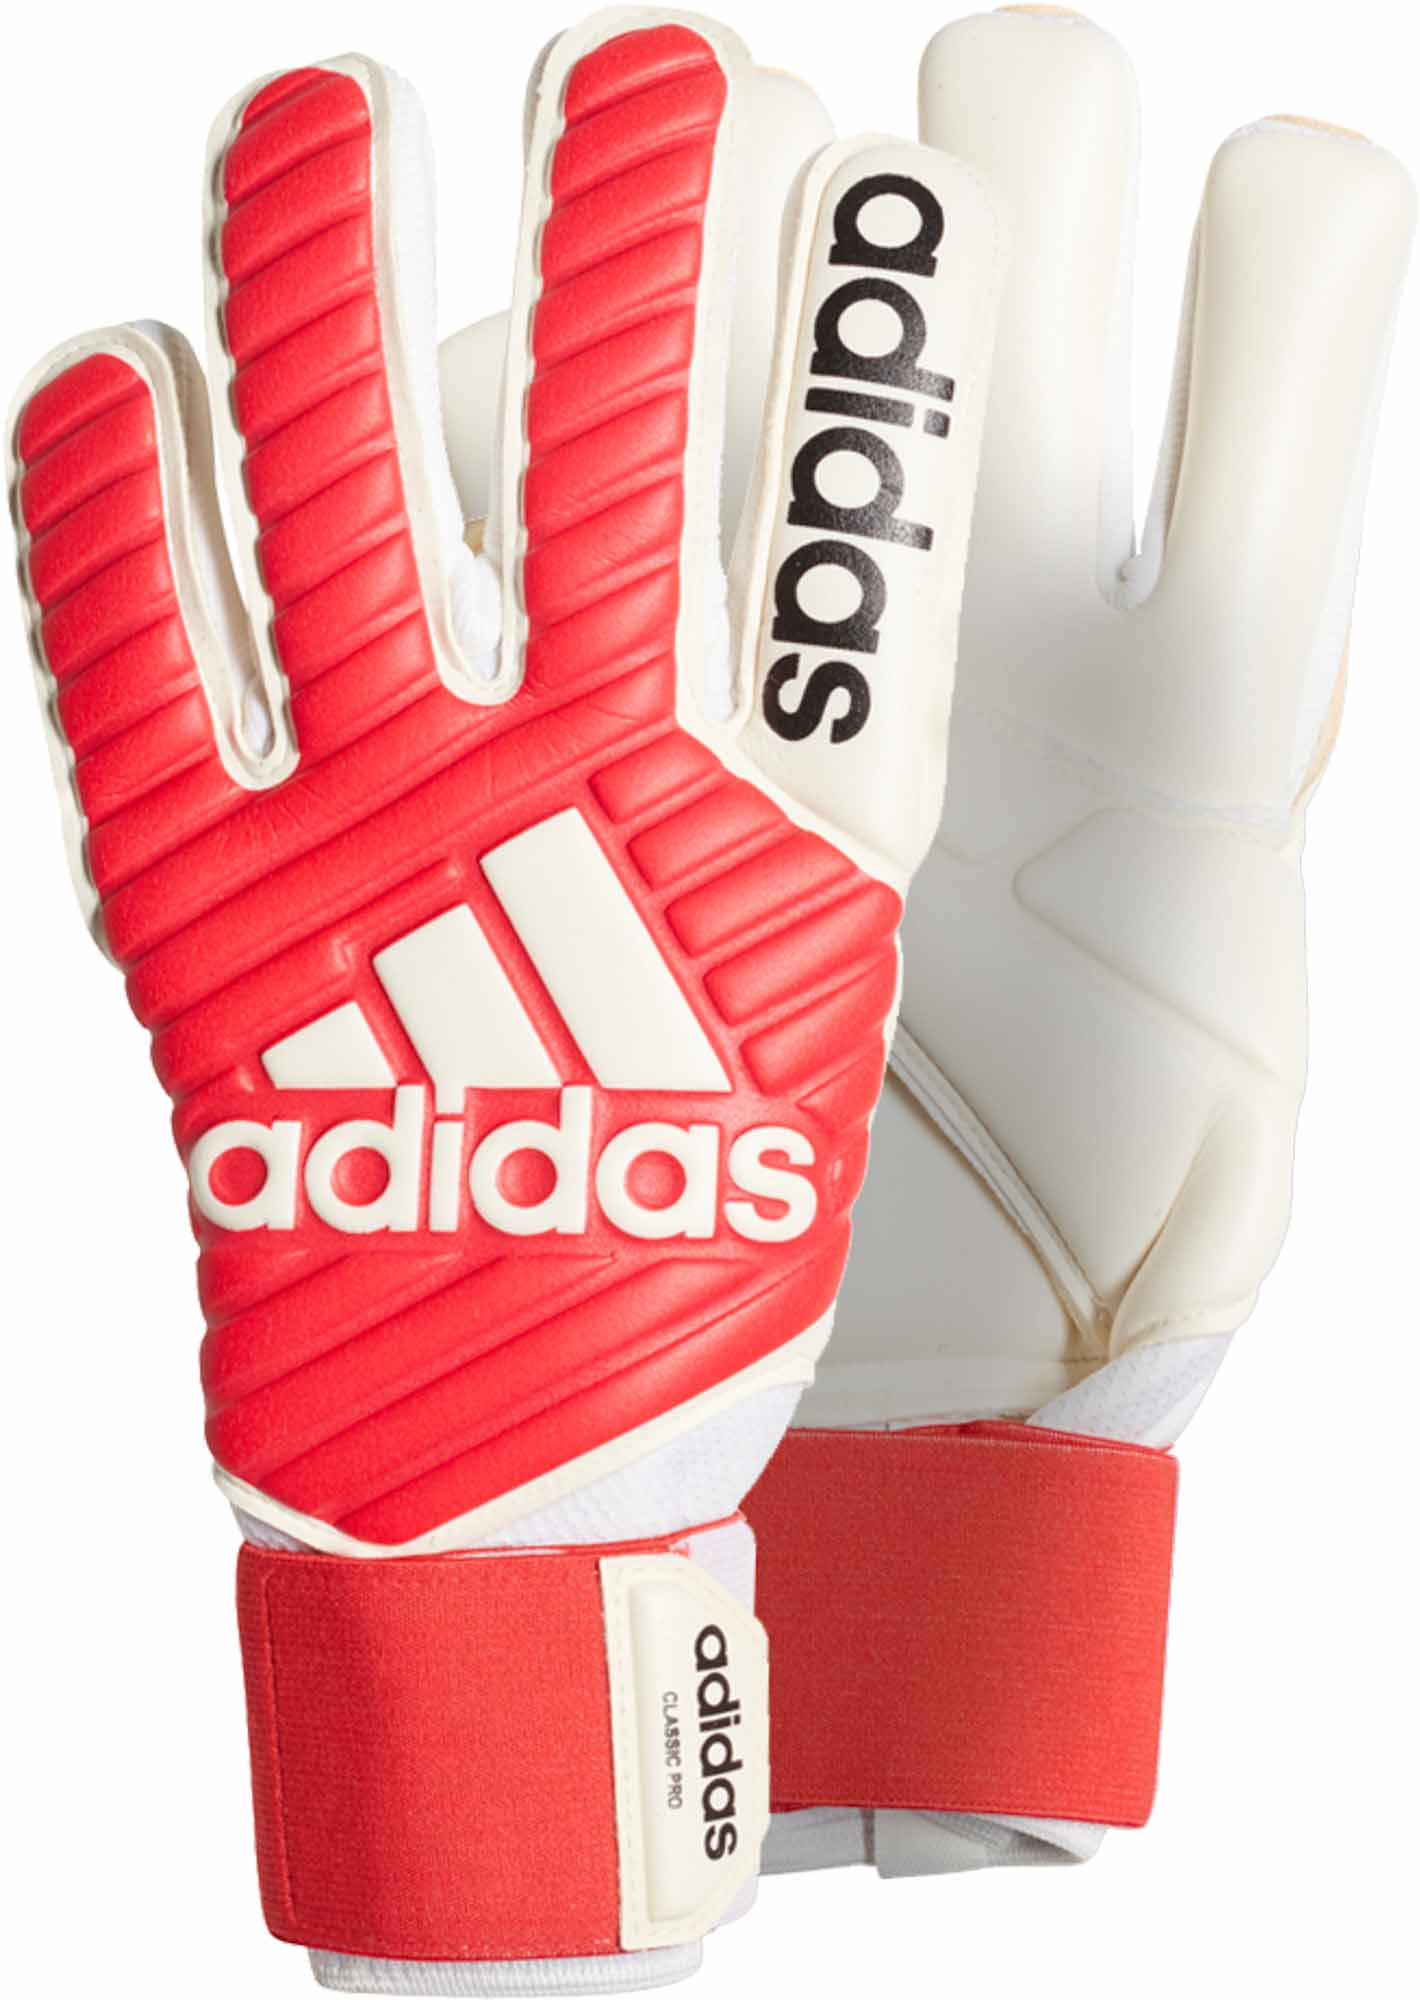 best service 64b68 f4593 adidas Classic Pro Goalkeeper Gloves – Real Coral White